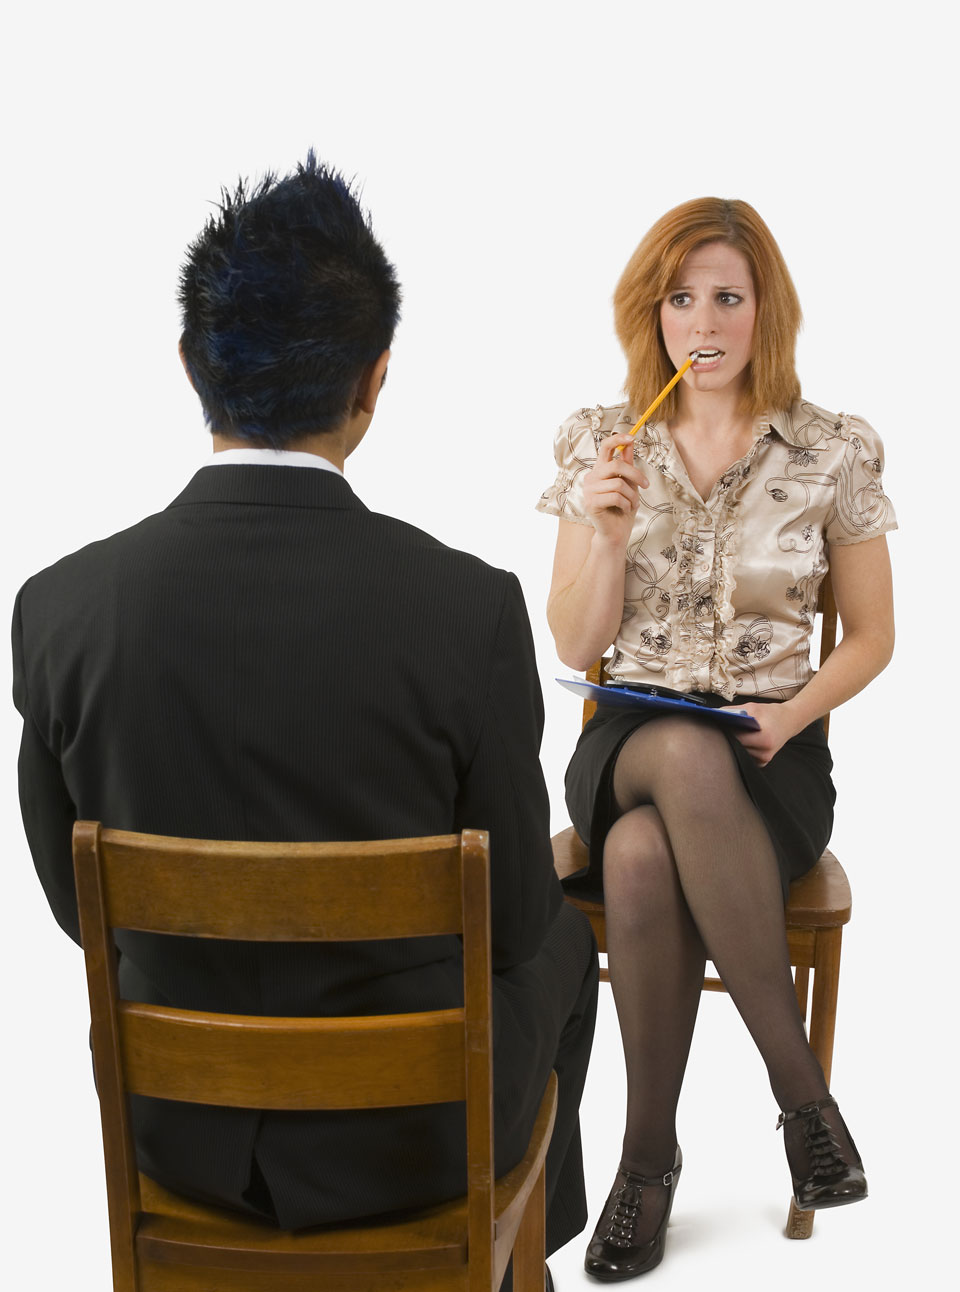 Women S Performance In Job Interviews Found To Be Affected